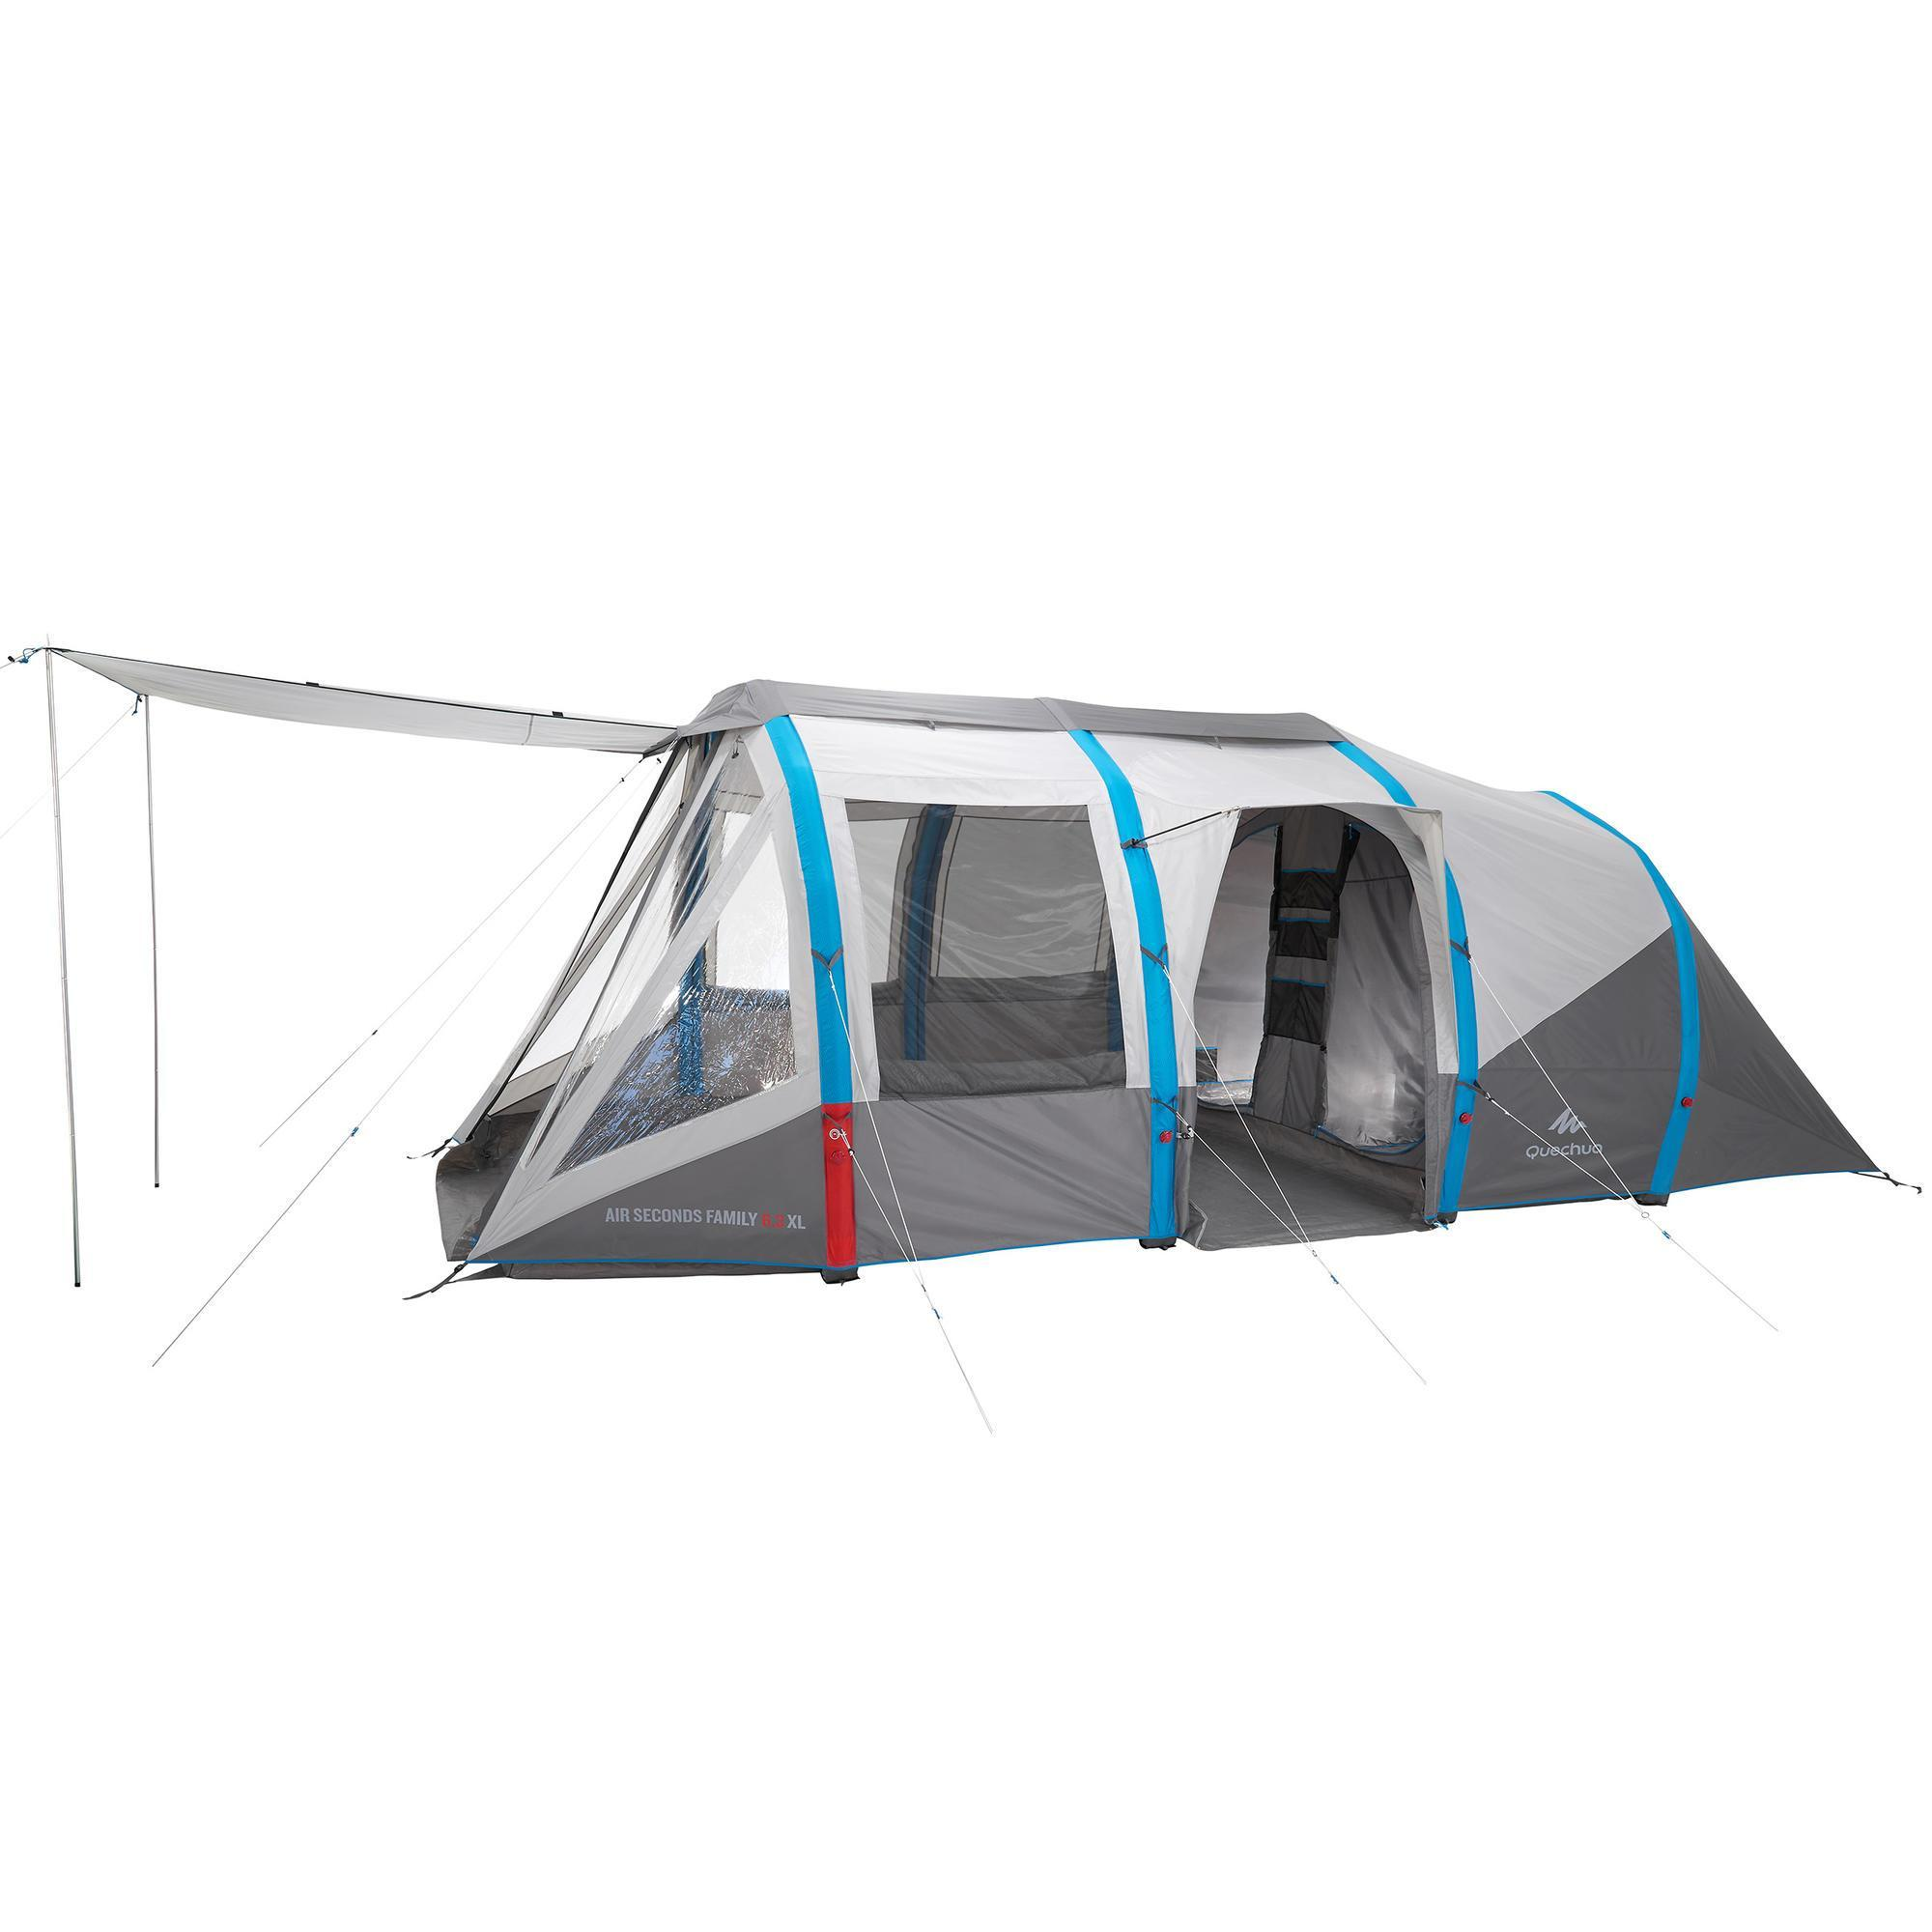 air seconds family tent 6 people grey quechua. Black Bedroom Furniture Sets. Home Design Ideas